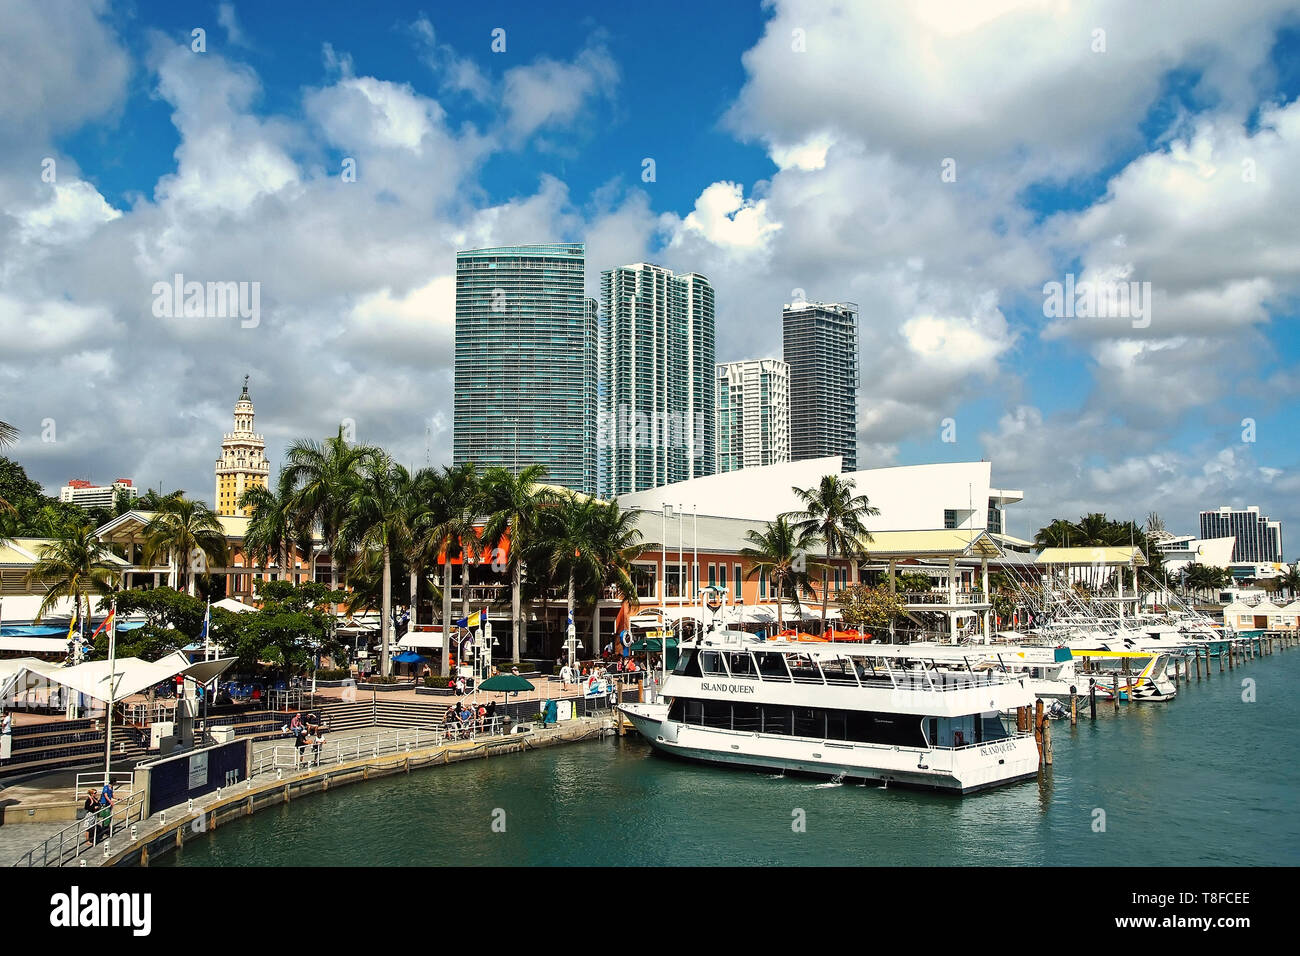 Miami, USA -september 28, 2008 : city buildings and boats on blue water in harbor waterfront on cloudy sky background in miami, USA. Summer vacation and travelling concept - Stock Image